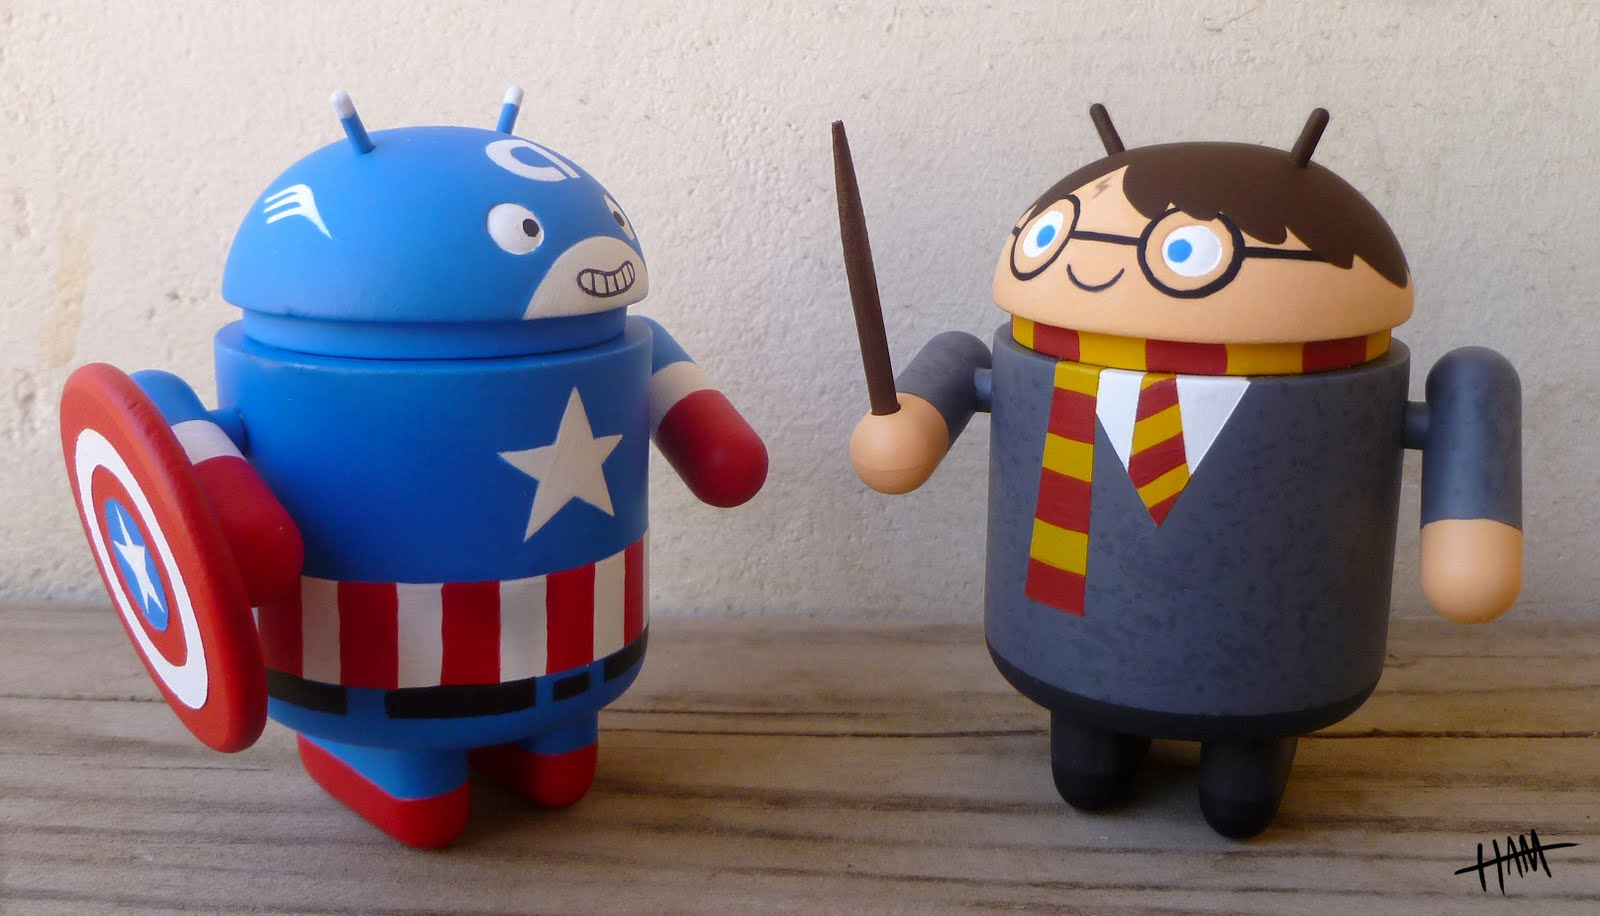 http://2.bp.blogspot.com/-TWQJ7BfKSf4/TiTysTyJYpI/AAAAAAAANSw/kjJuyt_5STw/s1600/San+Diego+Comic-Con+2011+Exclusive+Captain+America+%2526+Harry+Potter+Custom+Androids+by+Gary+Ham.jpg